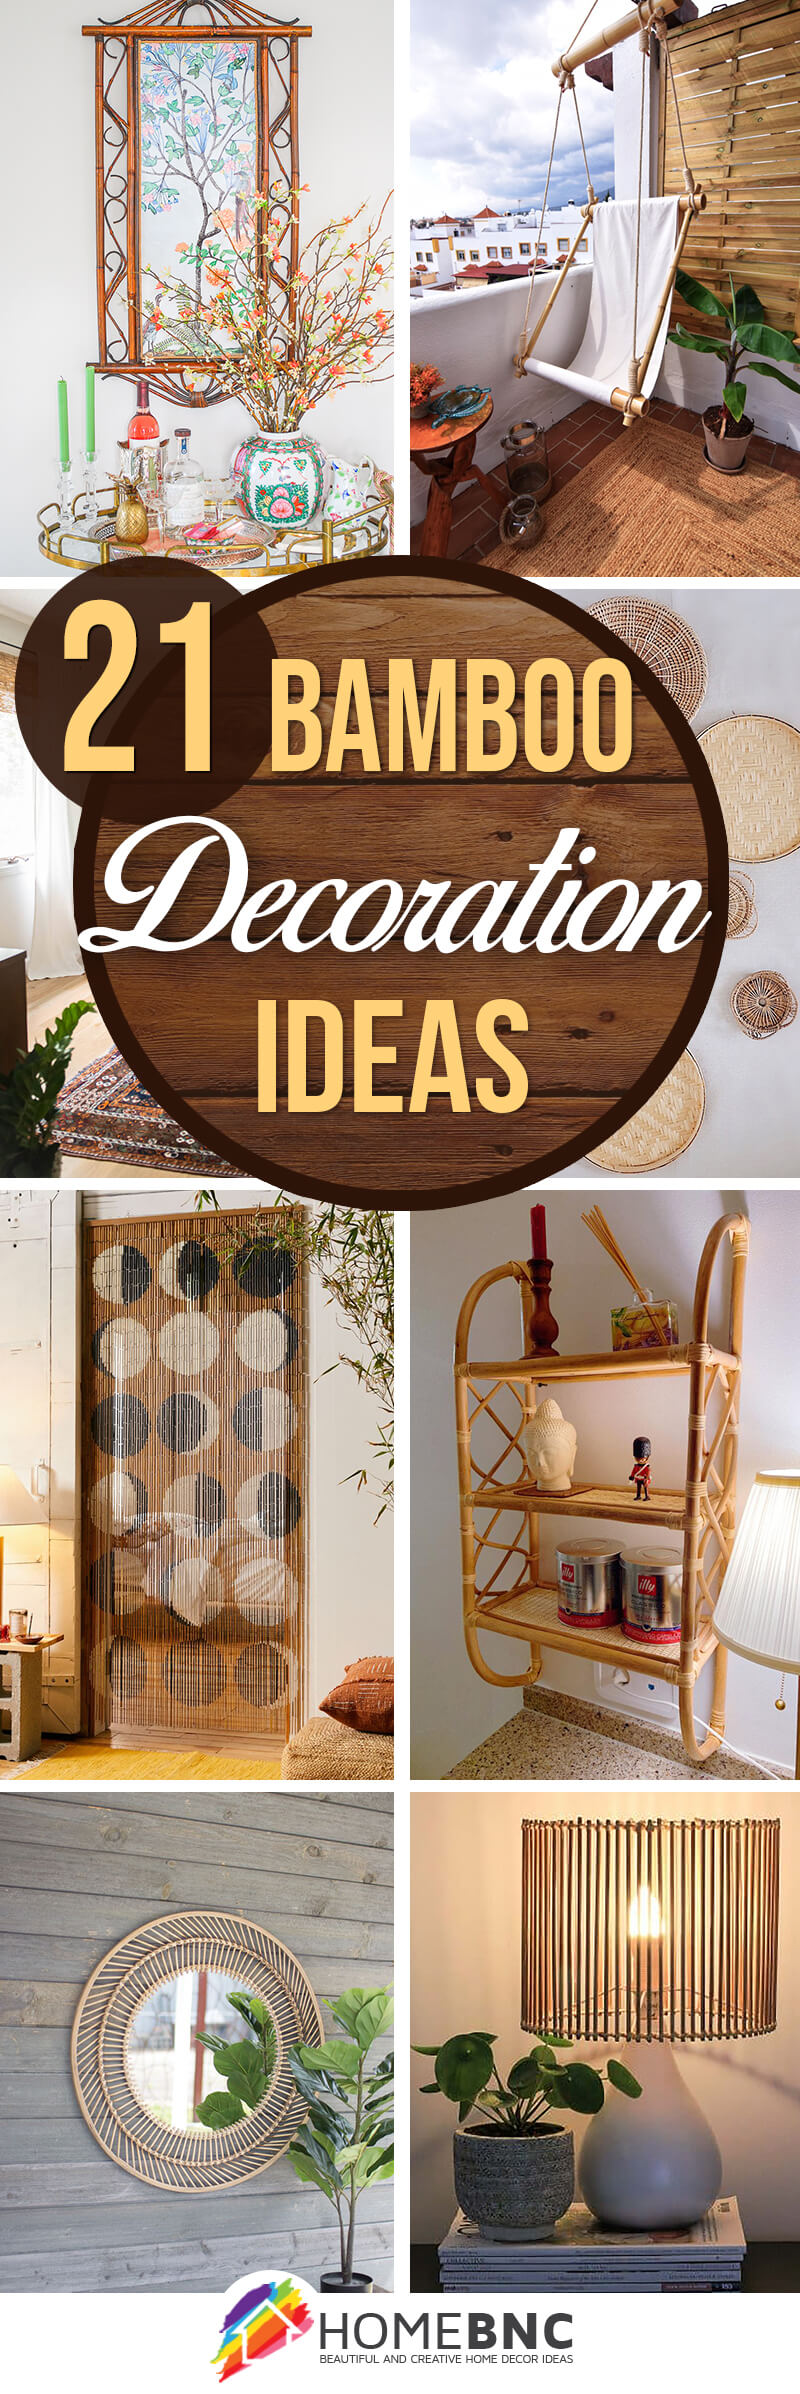 21 Best Bamboo Home Decor Ideas That Are Unforgettable In 2021